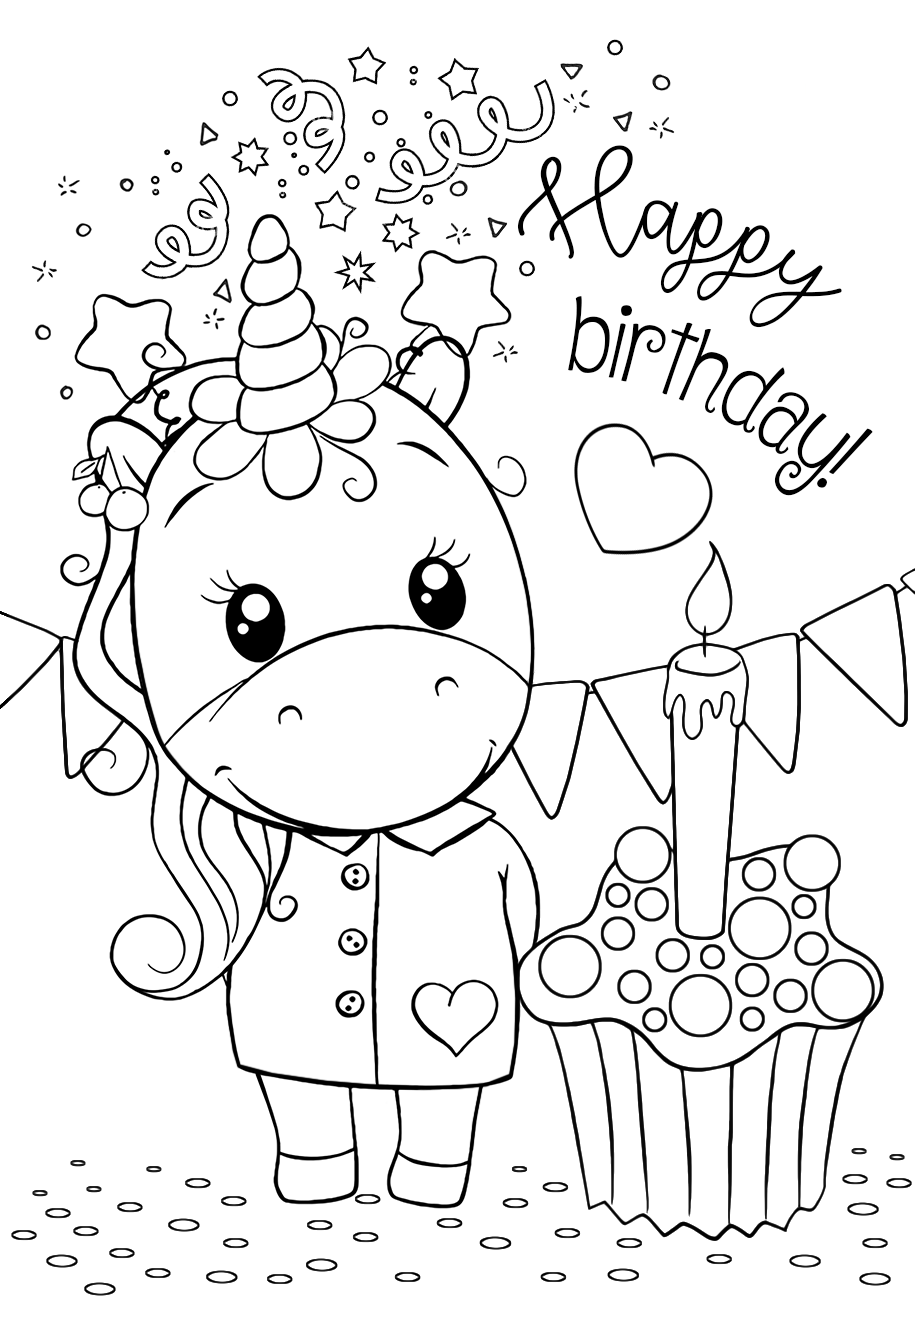 Unicorn happy birthday - Coloring pages for you